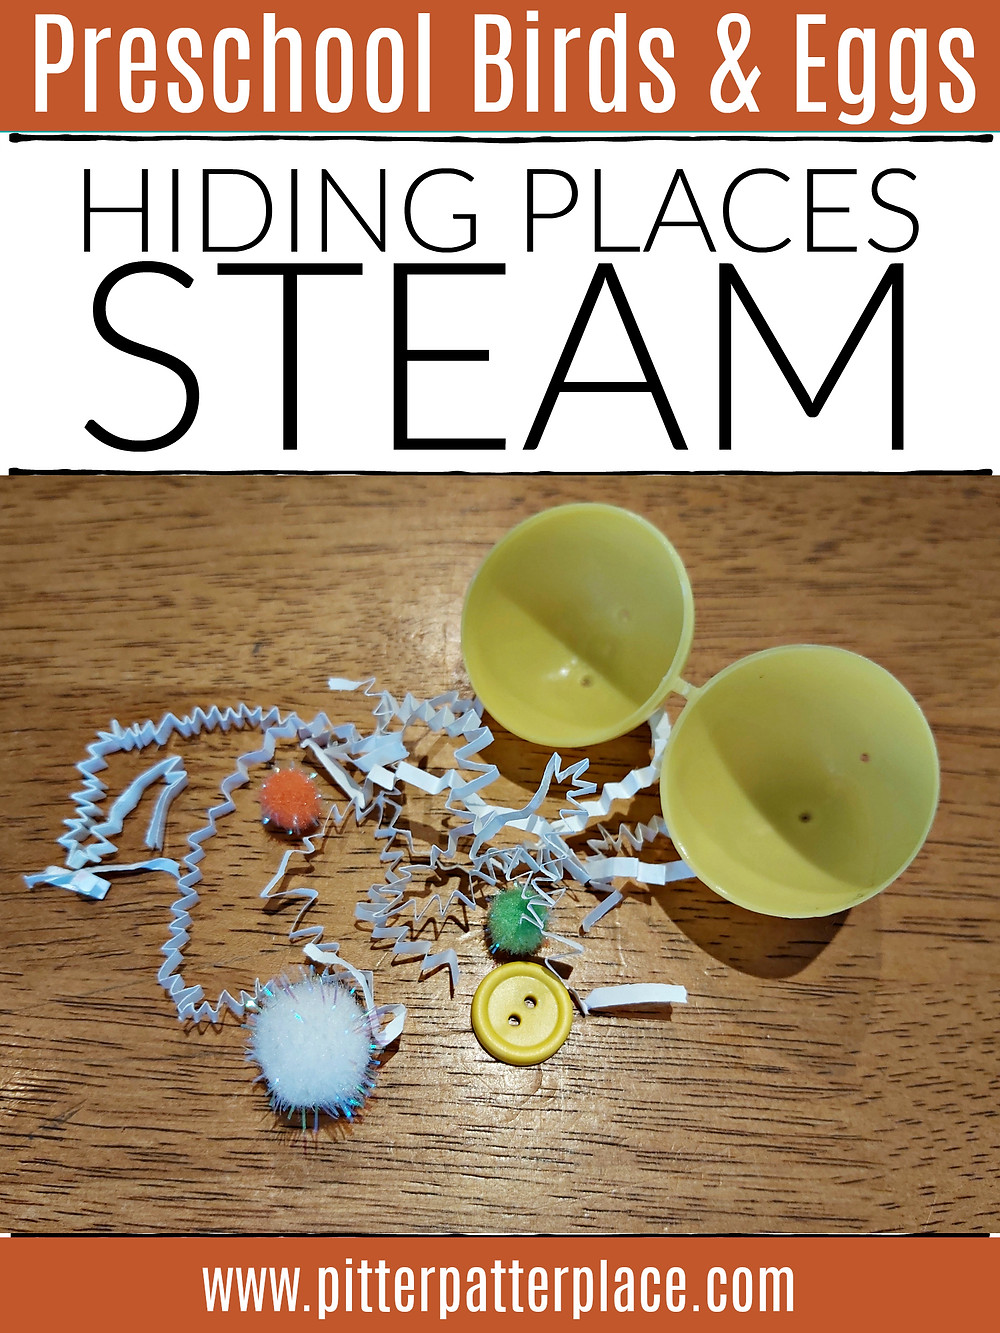 plastic Easter egg with pompoms, shredded paper, and buttons spilling out with text that reads: Preschool Birds & Eggs Hiding Places STEAM